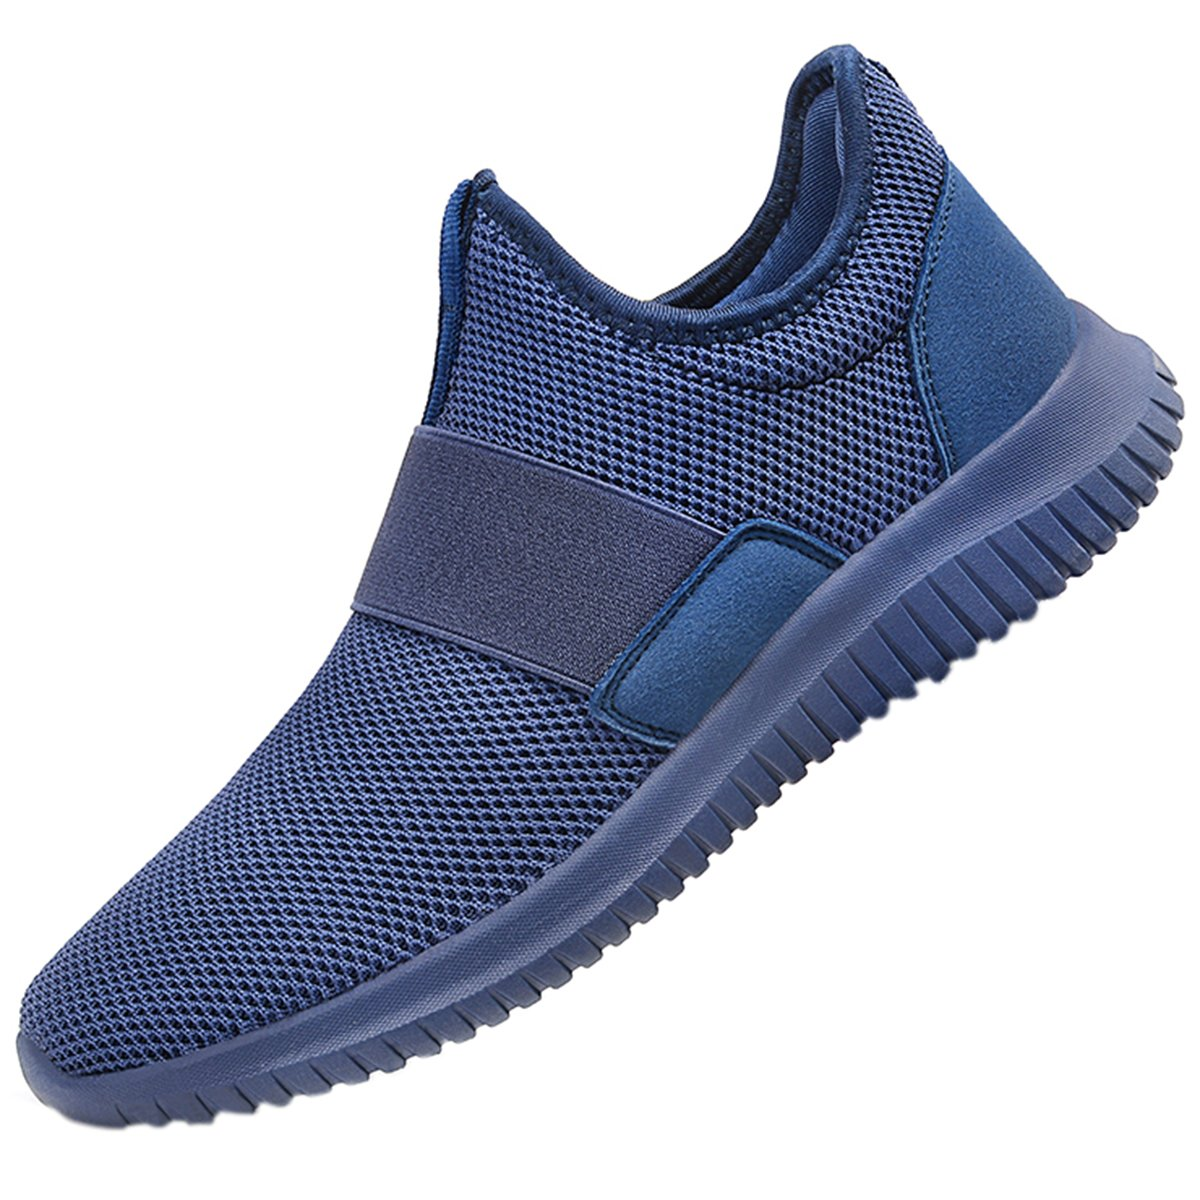 QANSI Mens Sneakers Mesh Breathable for Summer Athletic Running Walking Gym Shoes Comfortable Sports Tennis Shoes Blue